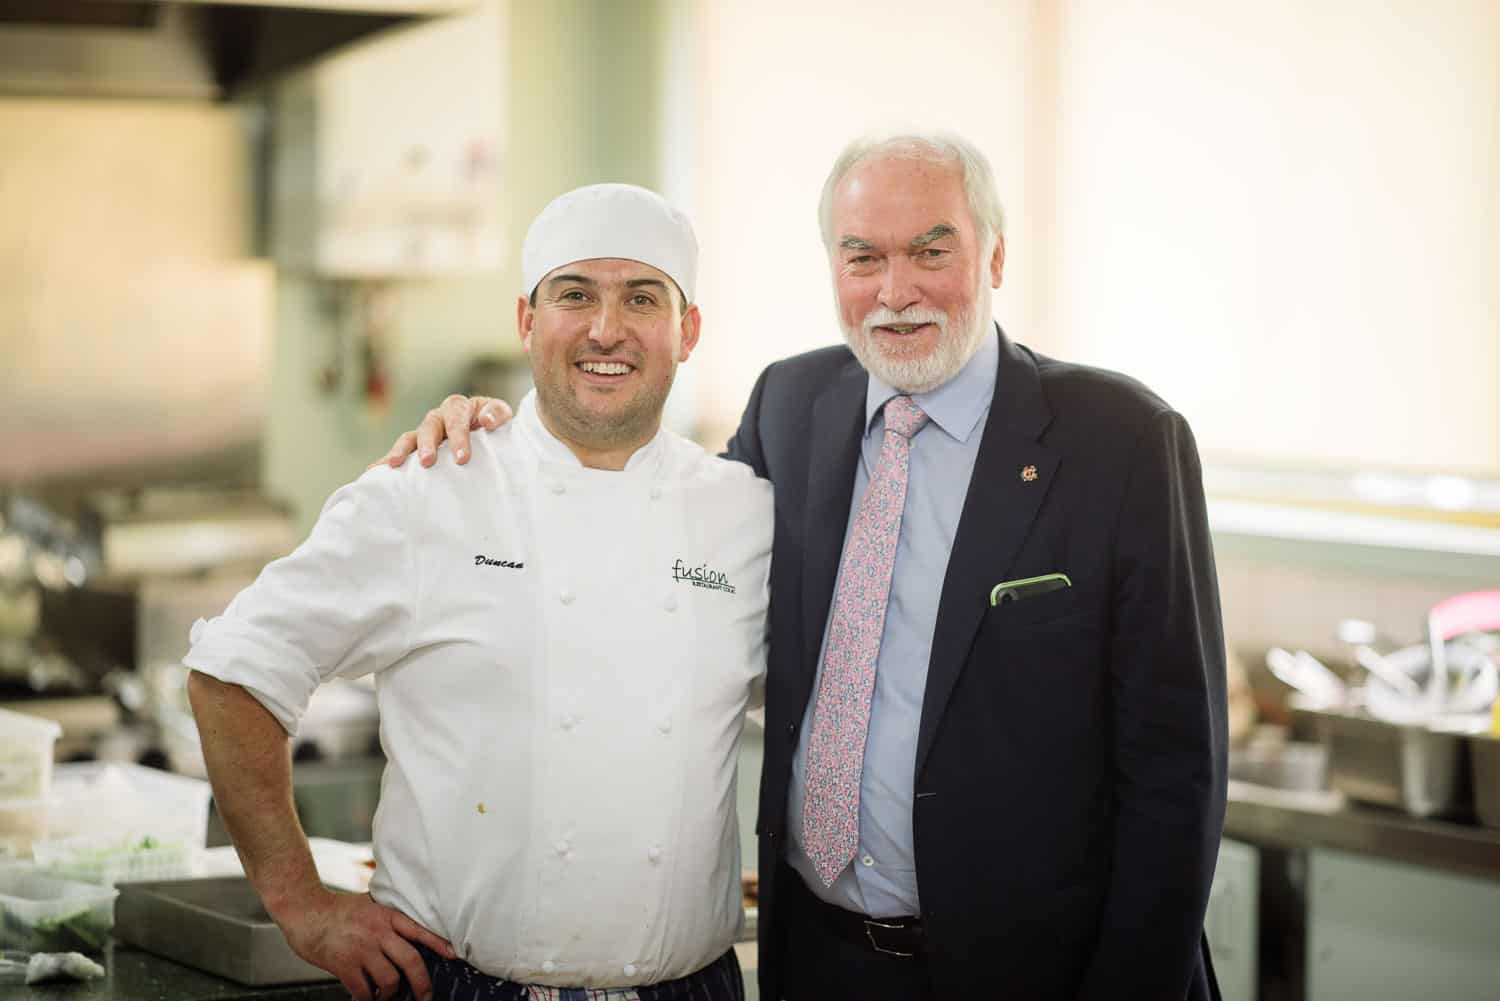 John Verrall and a chef